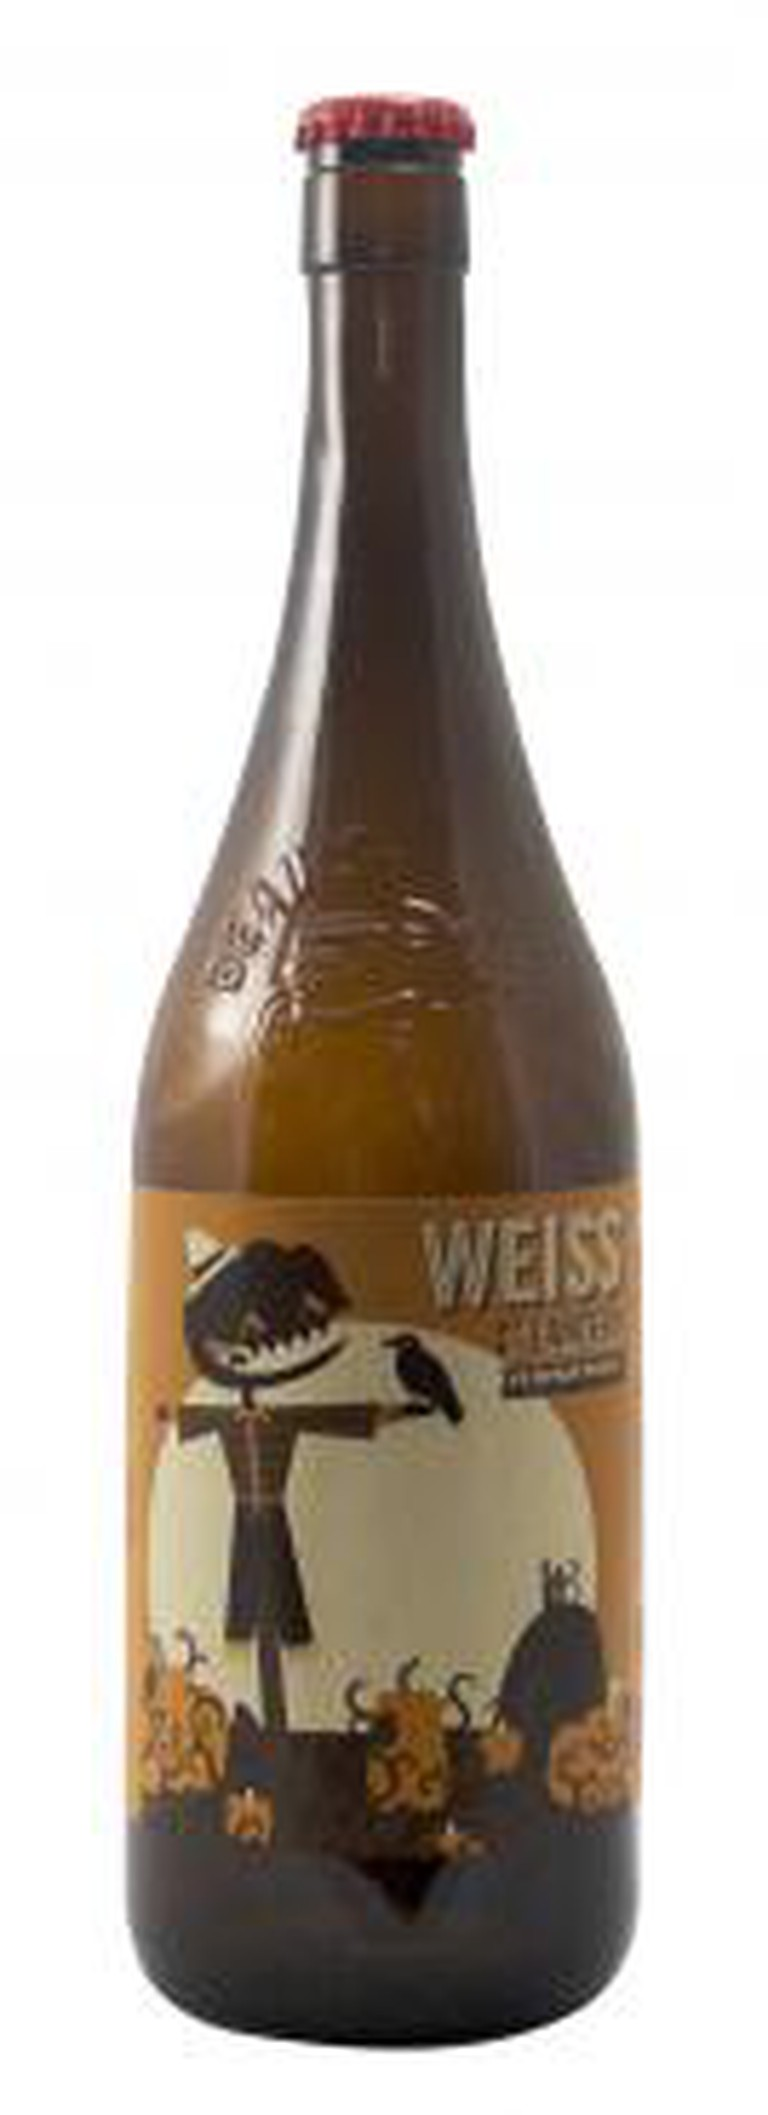 Weiss O'Lantern | Courtesy of Beau's All Natural Brewing